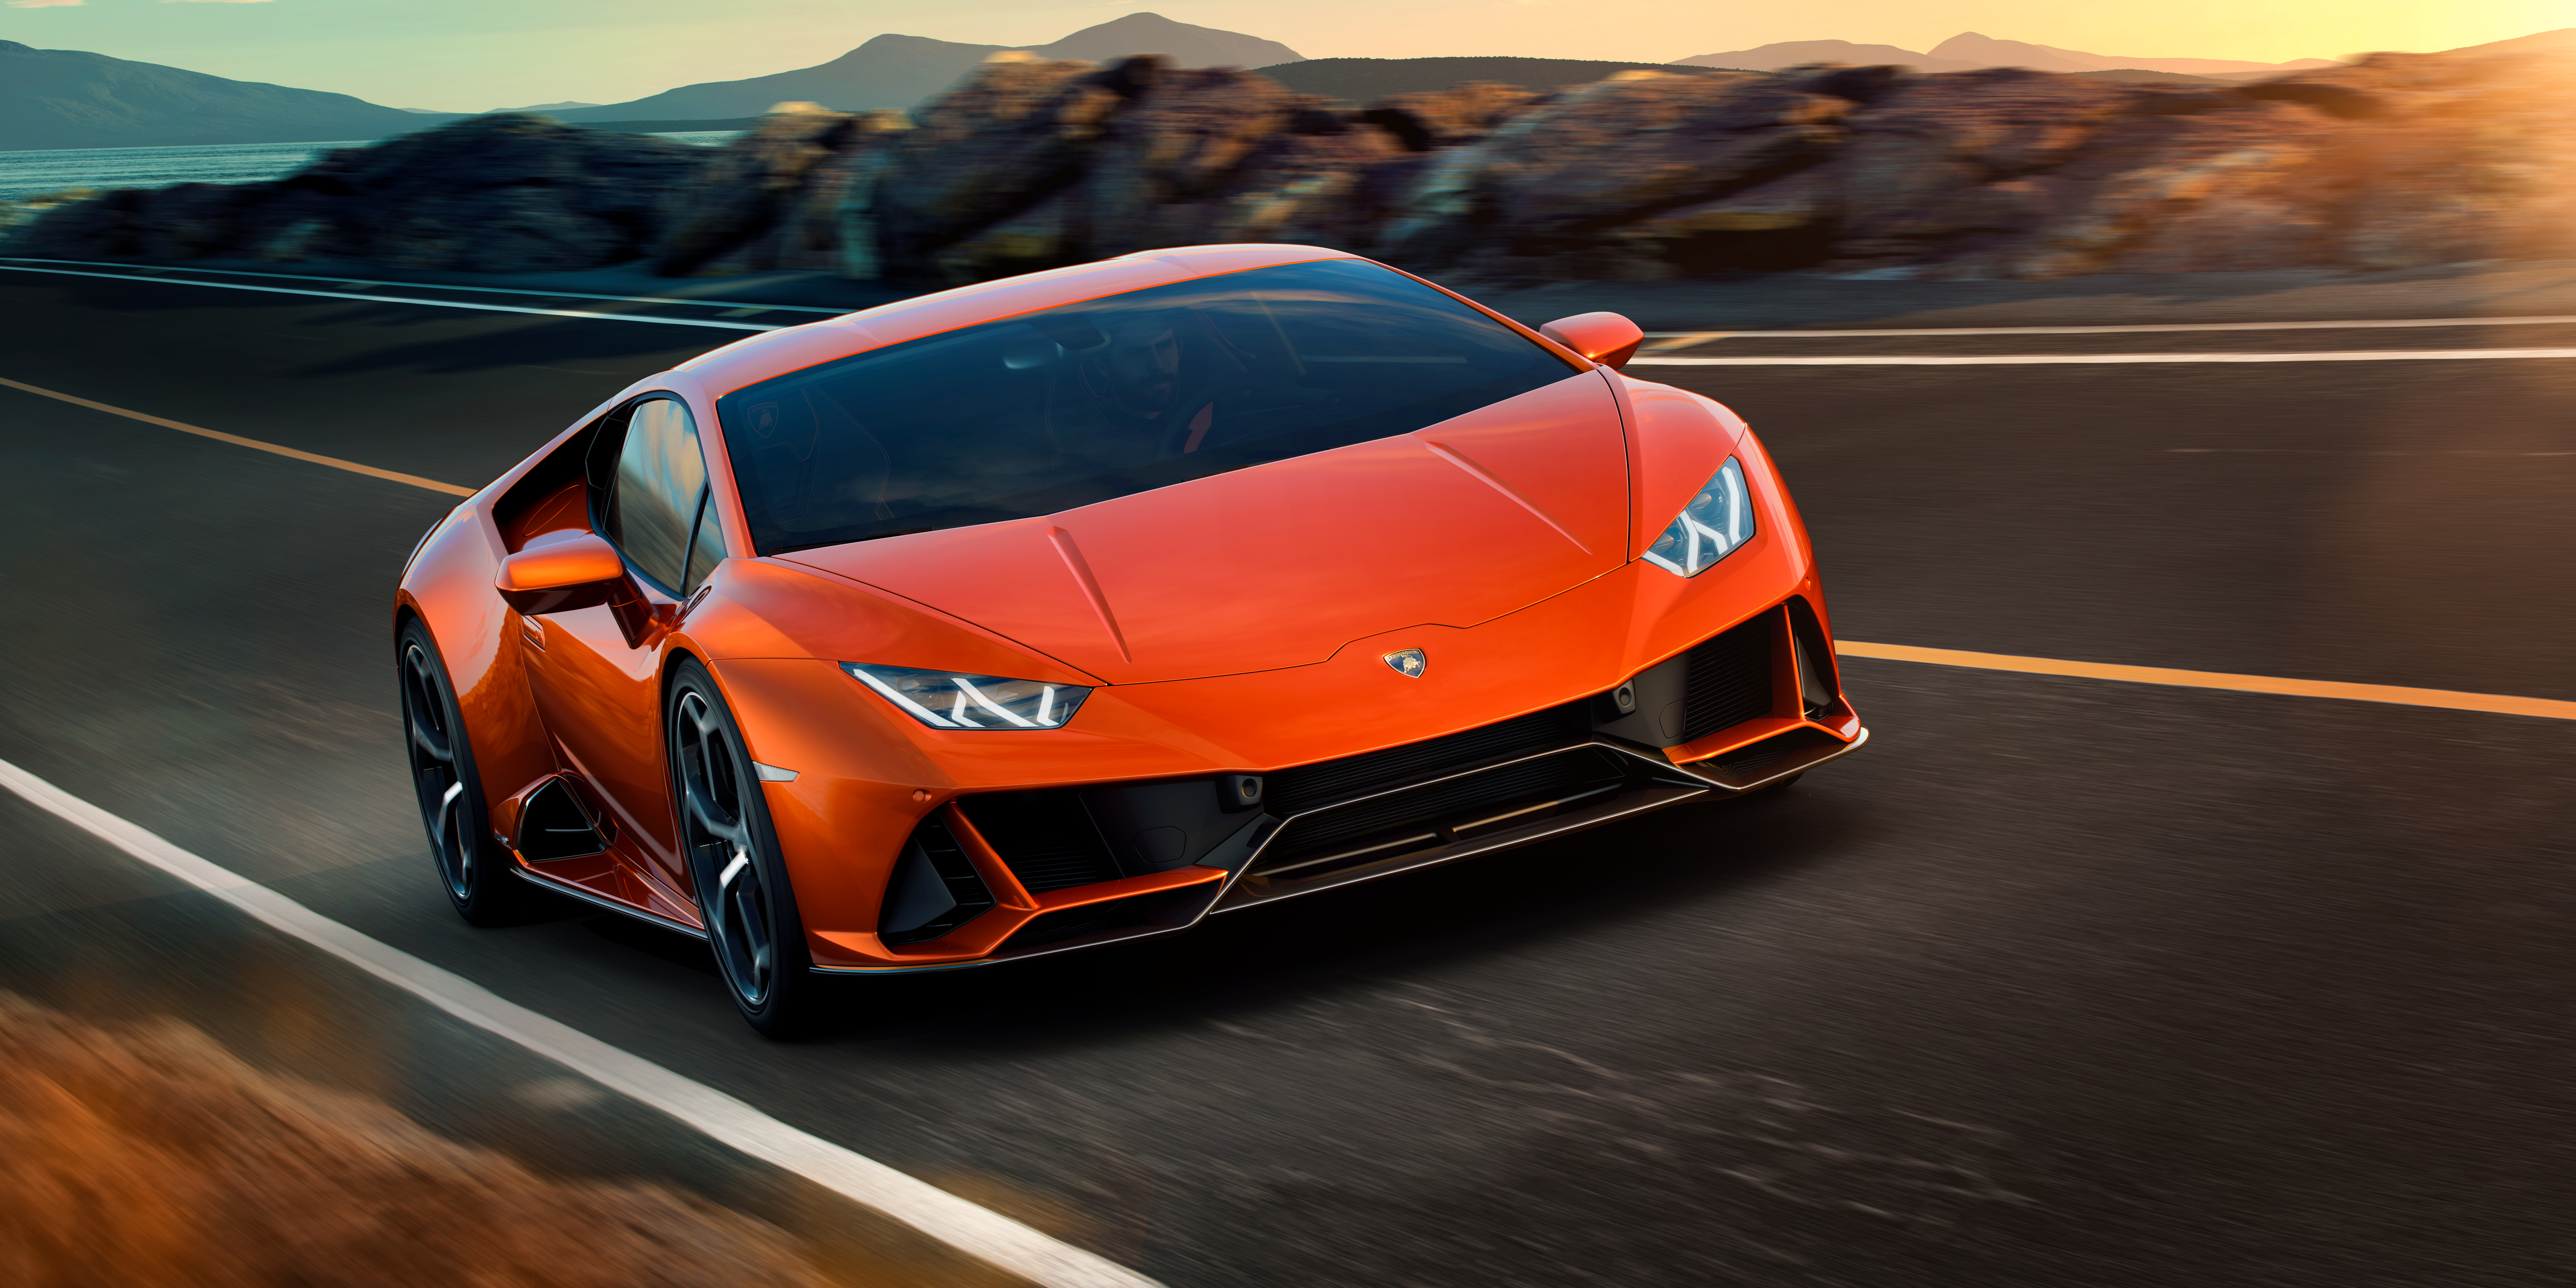 There S A Reason Why The 2019 Lamborghini Huracan Evo Is Missing The